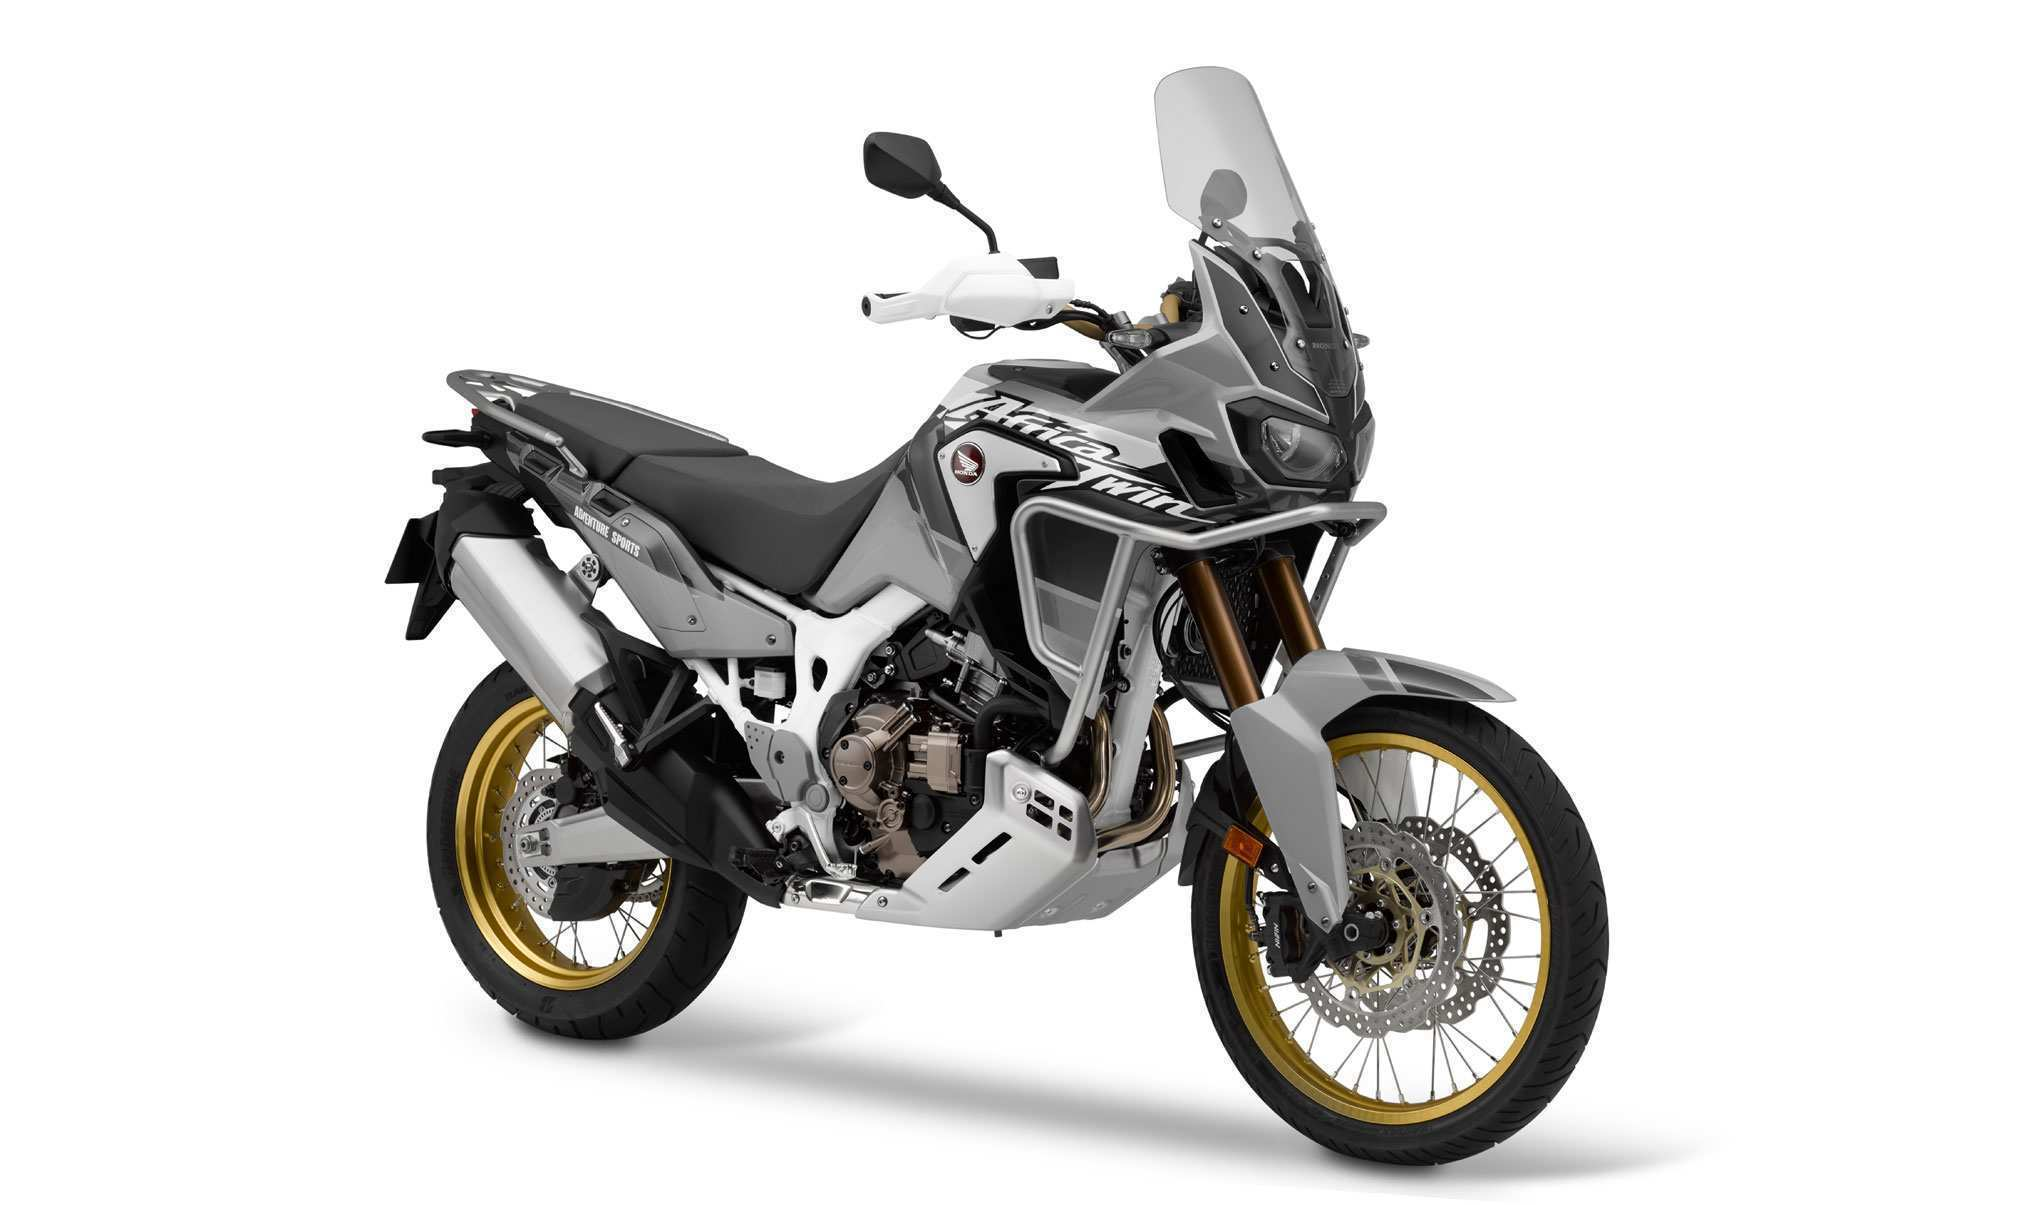 51 New 2019 Honda Dct Motorcycles Release for 2019 Honda Dct Motorcycles